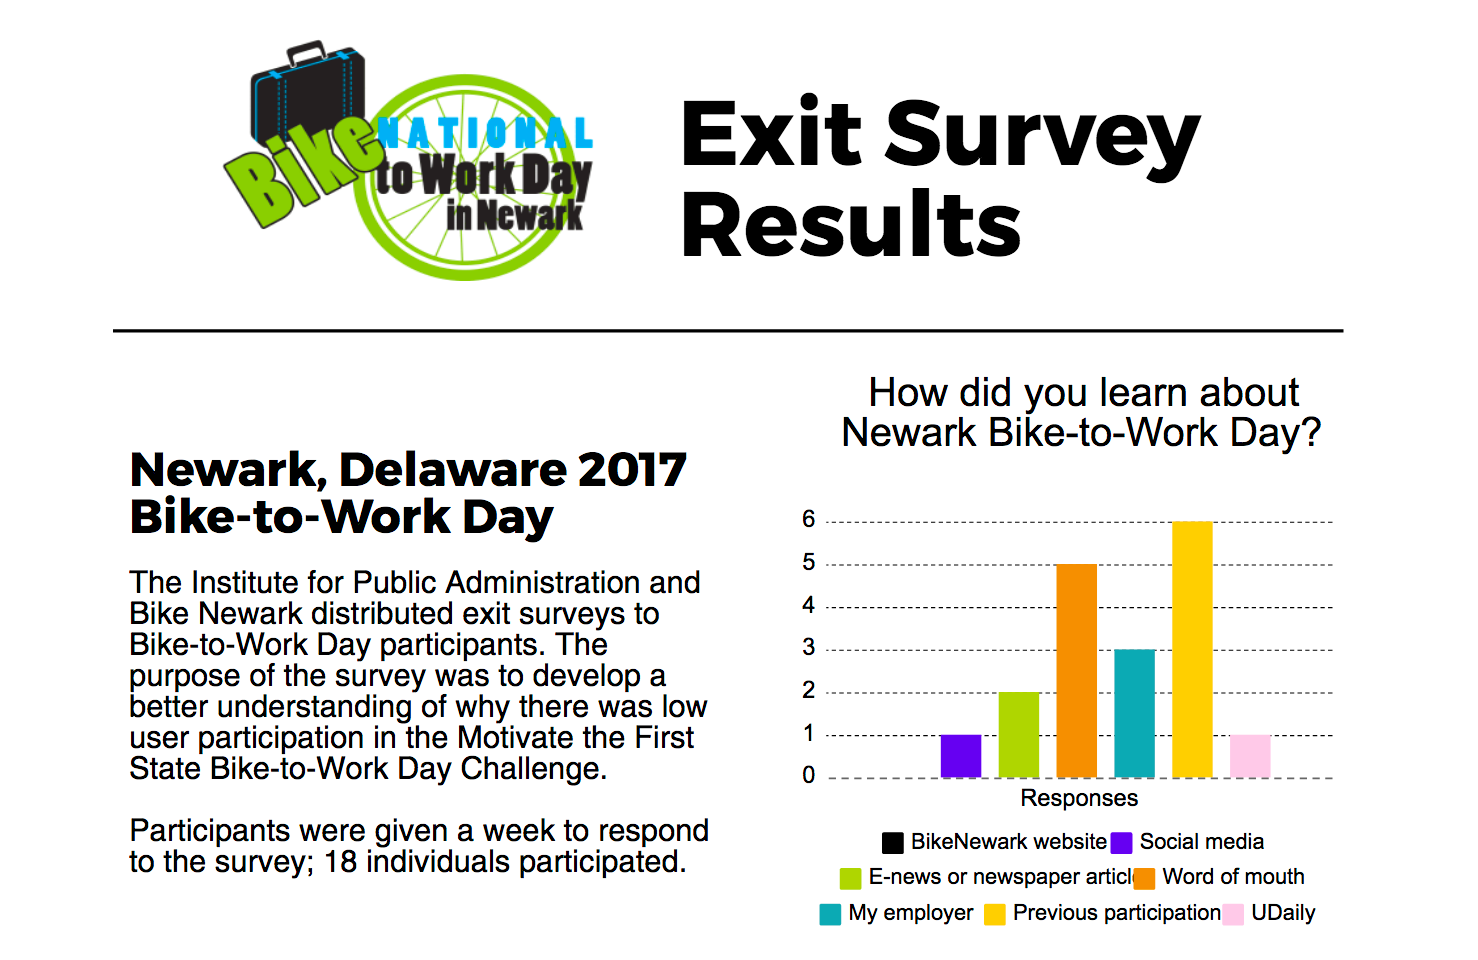 Screen capture of Newark, Delaware 2017 Bike-to-Work Day & Motivate the First State Challenge Piktochart